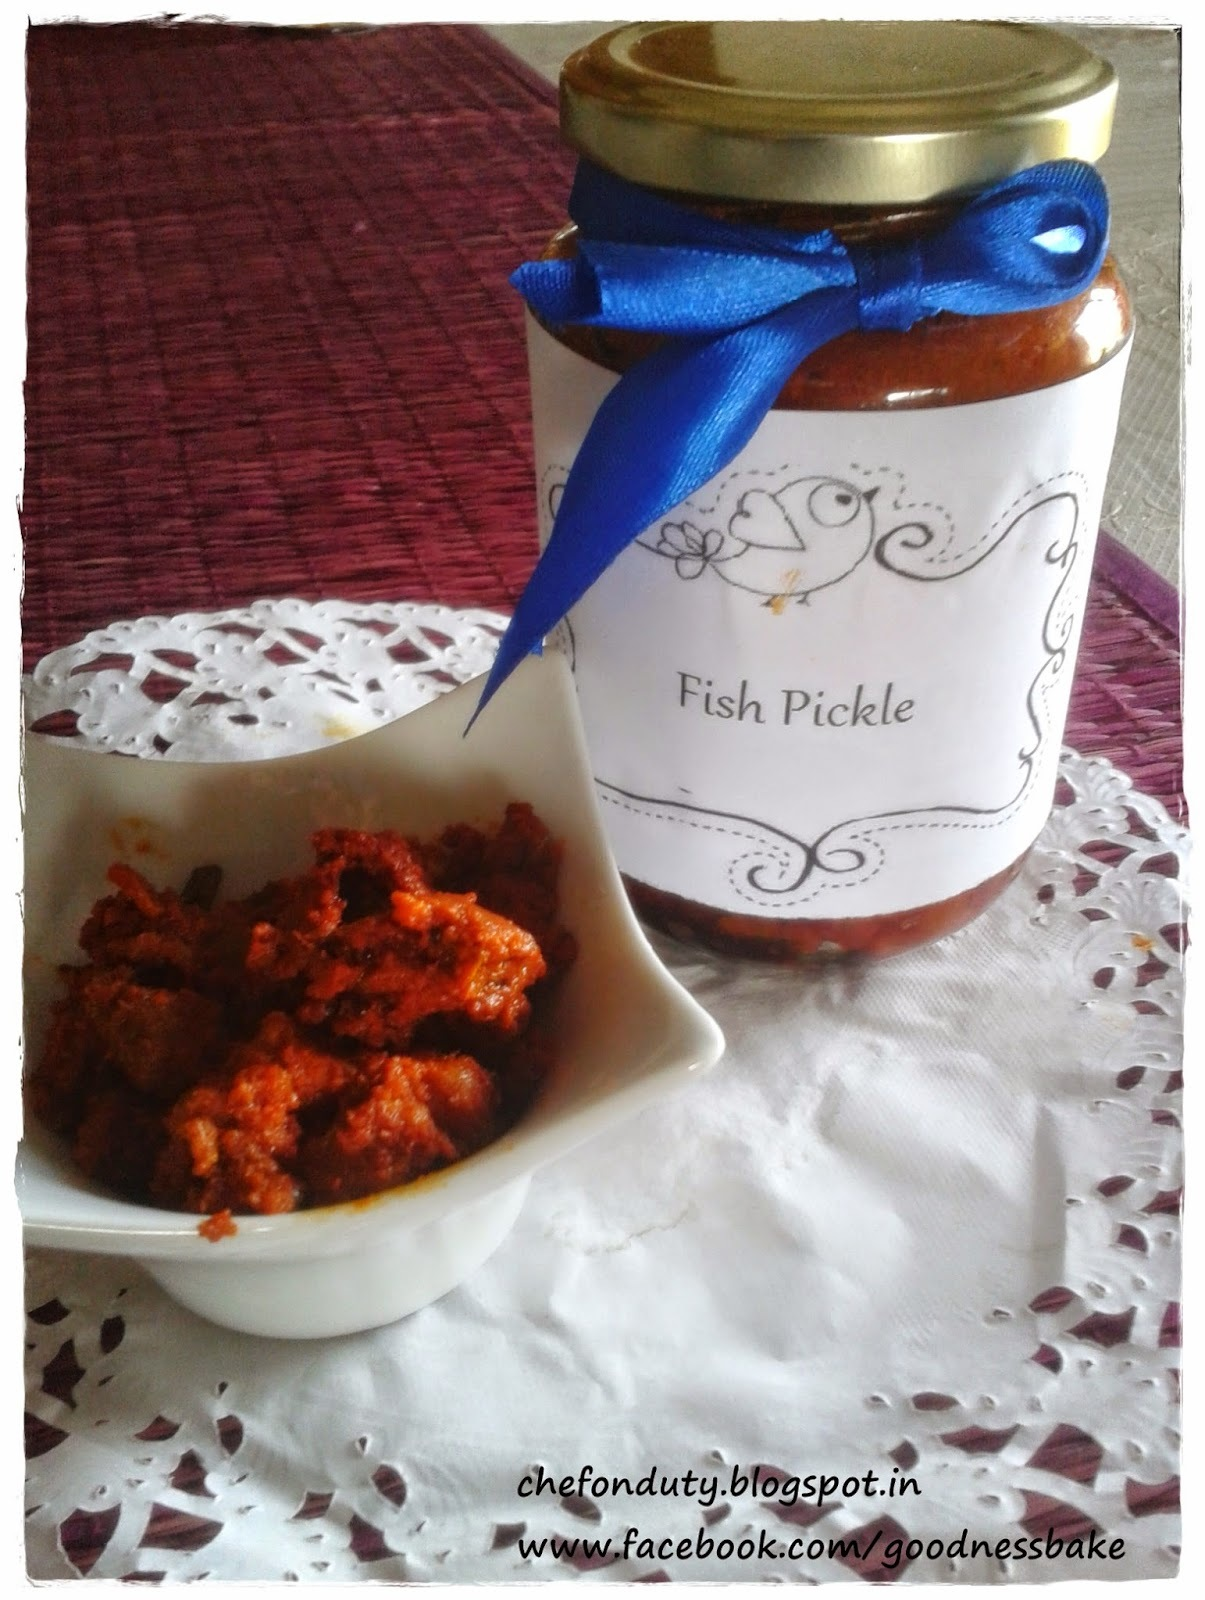 dry fish pickle